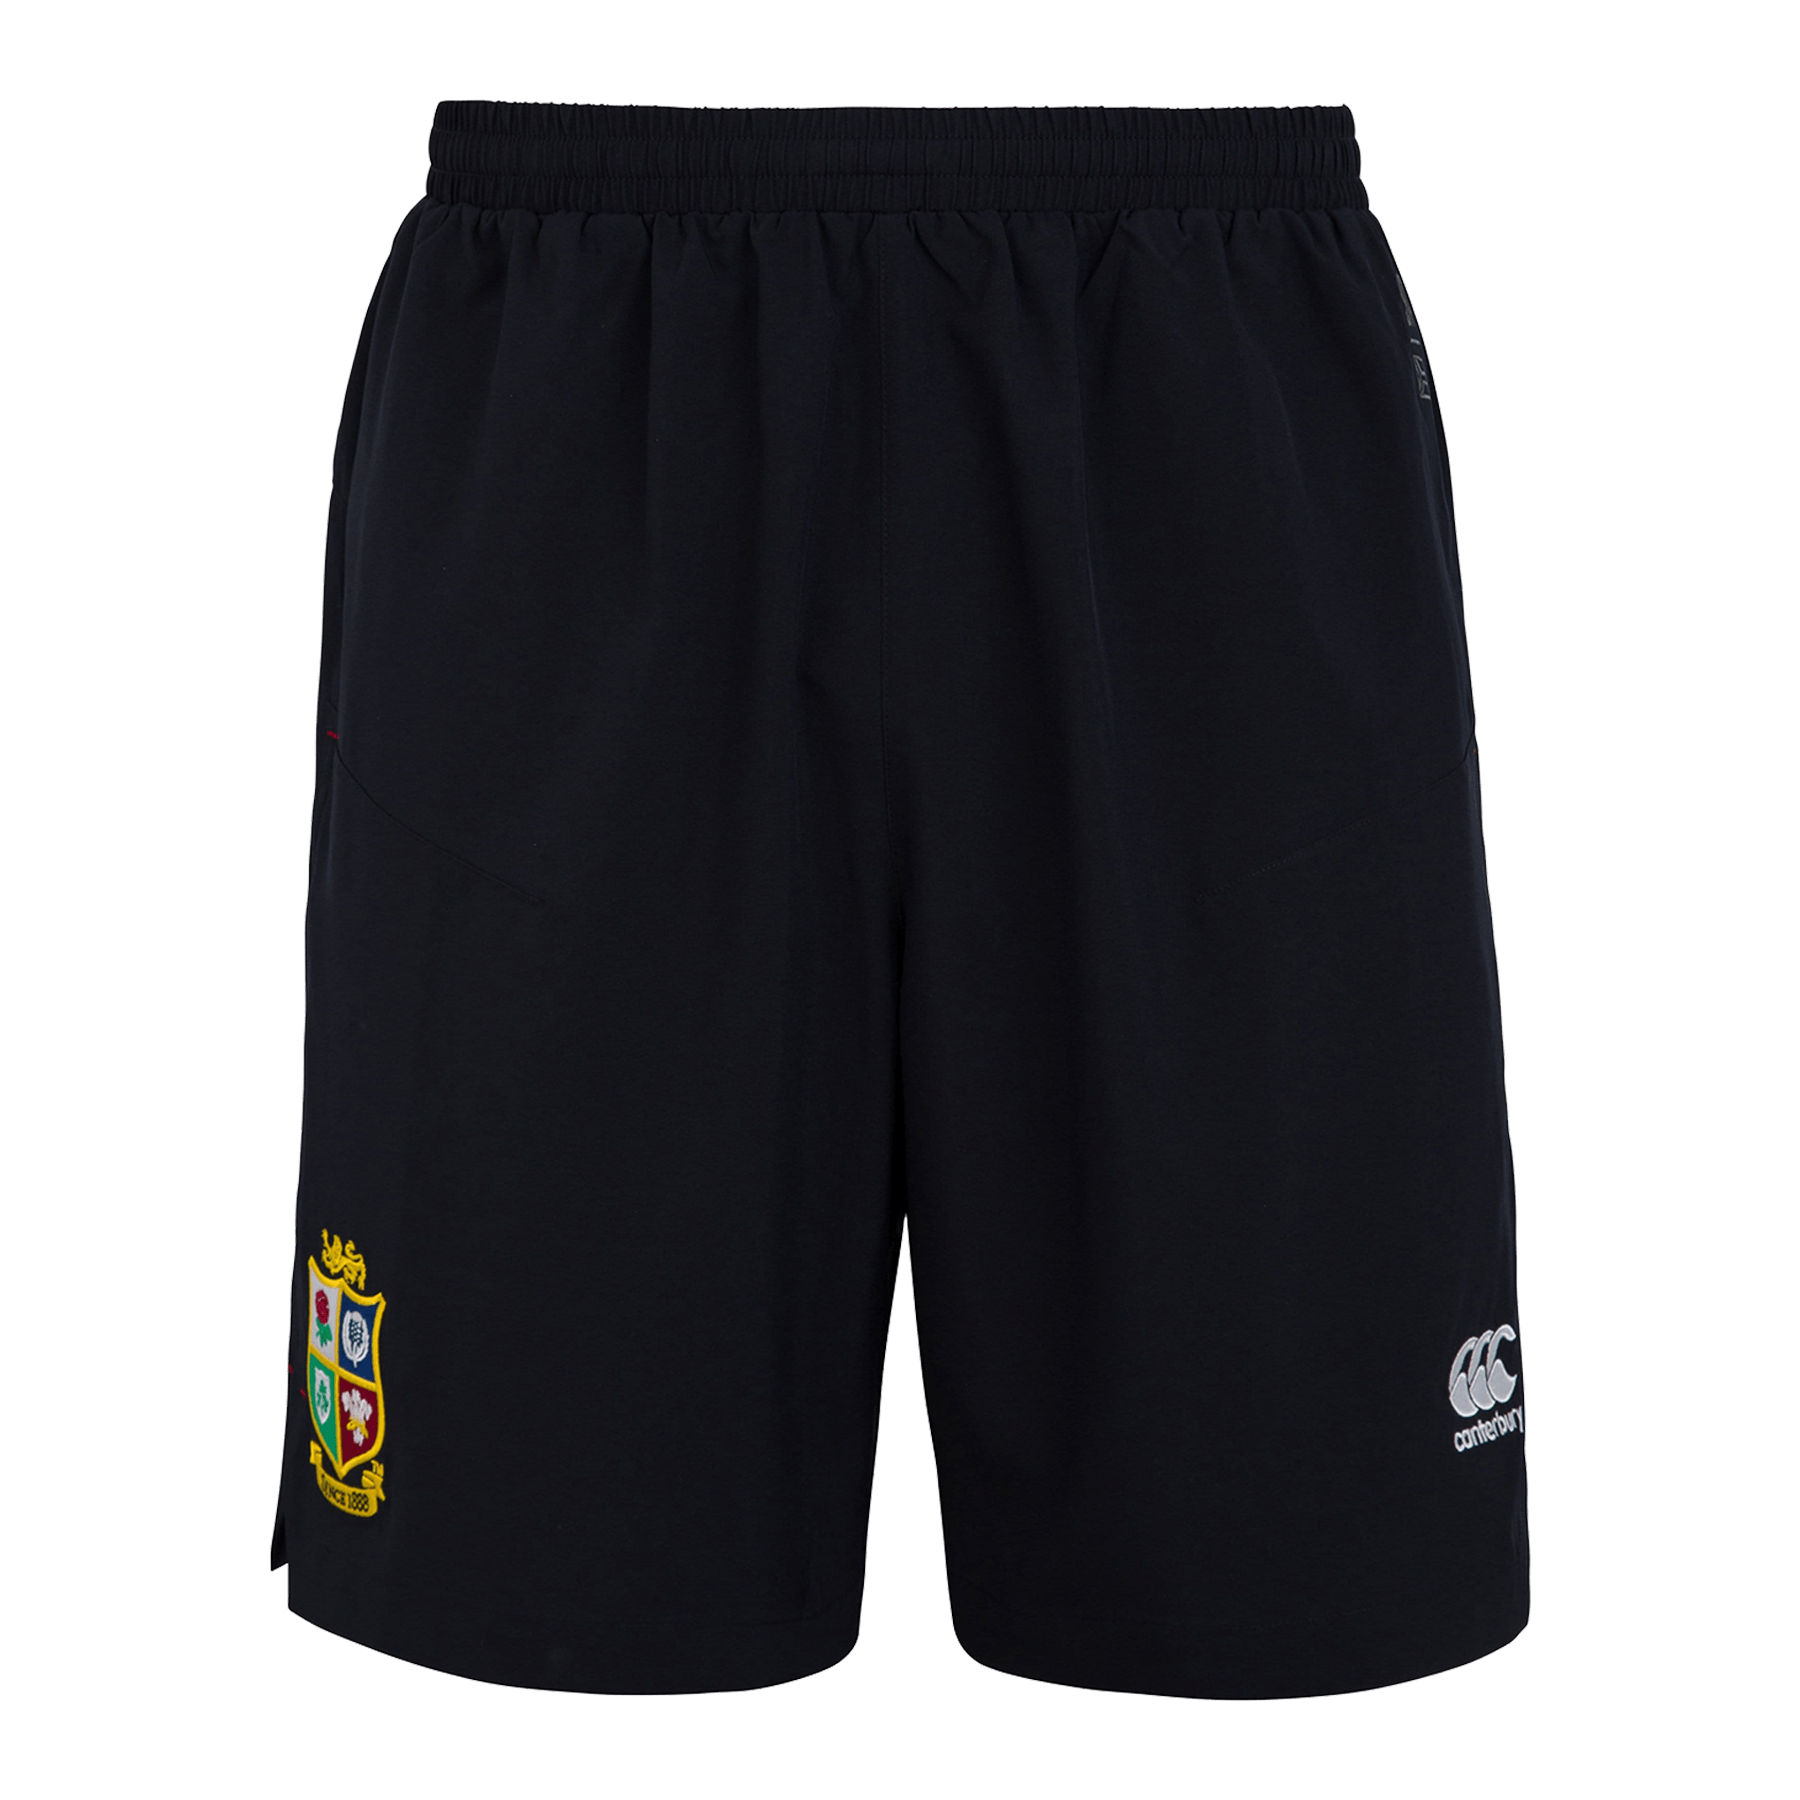 British and Irish Lions Rugby Woven Gym Shorts